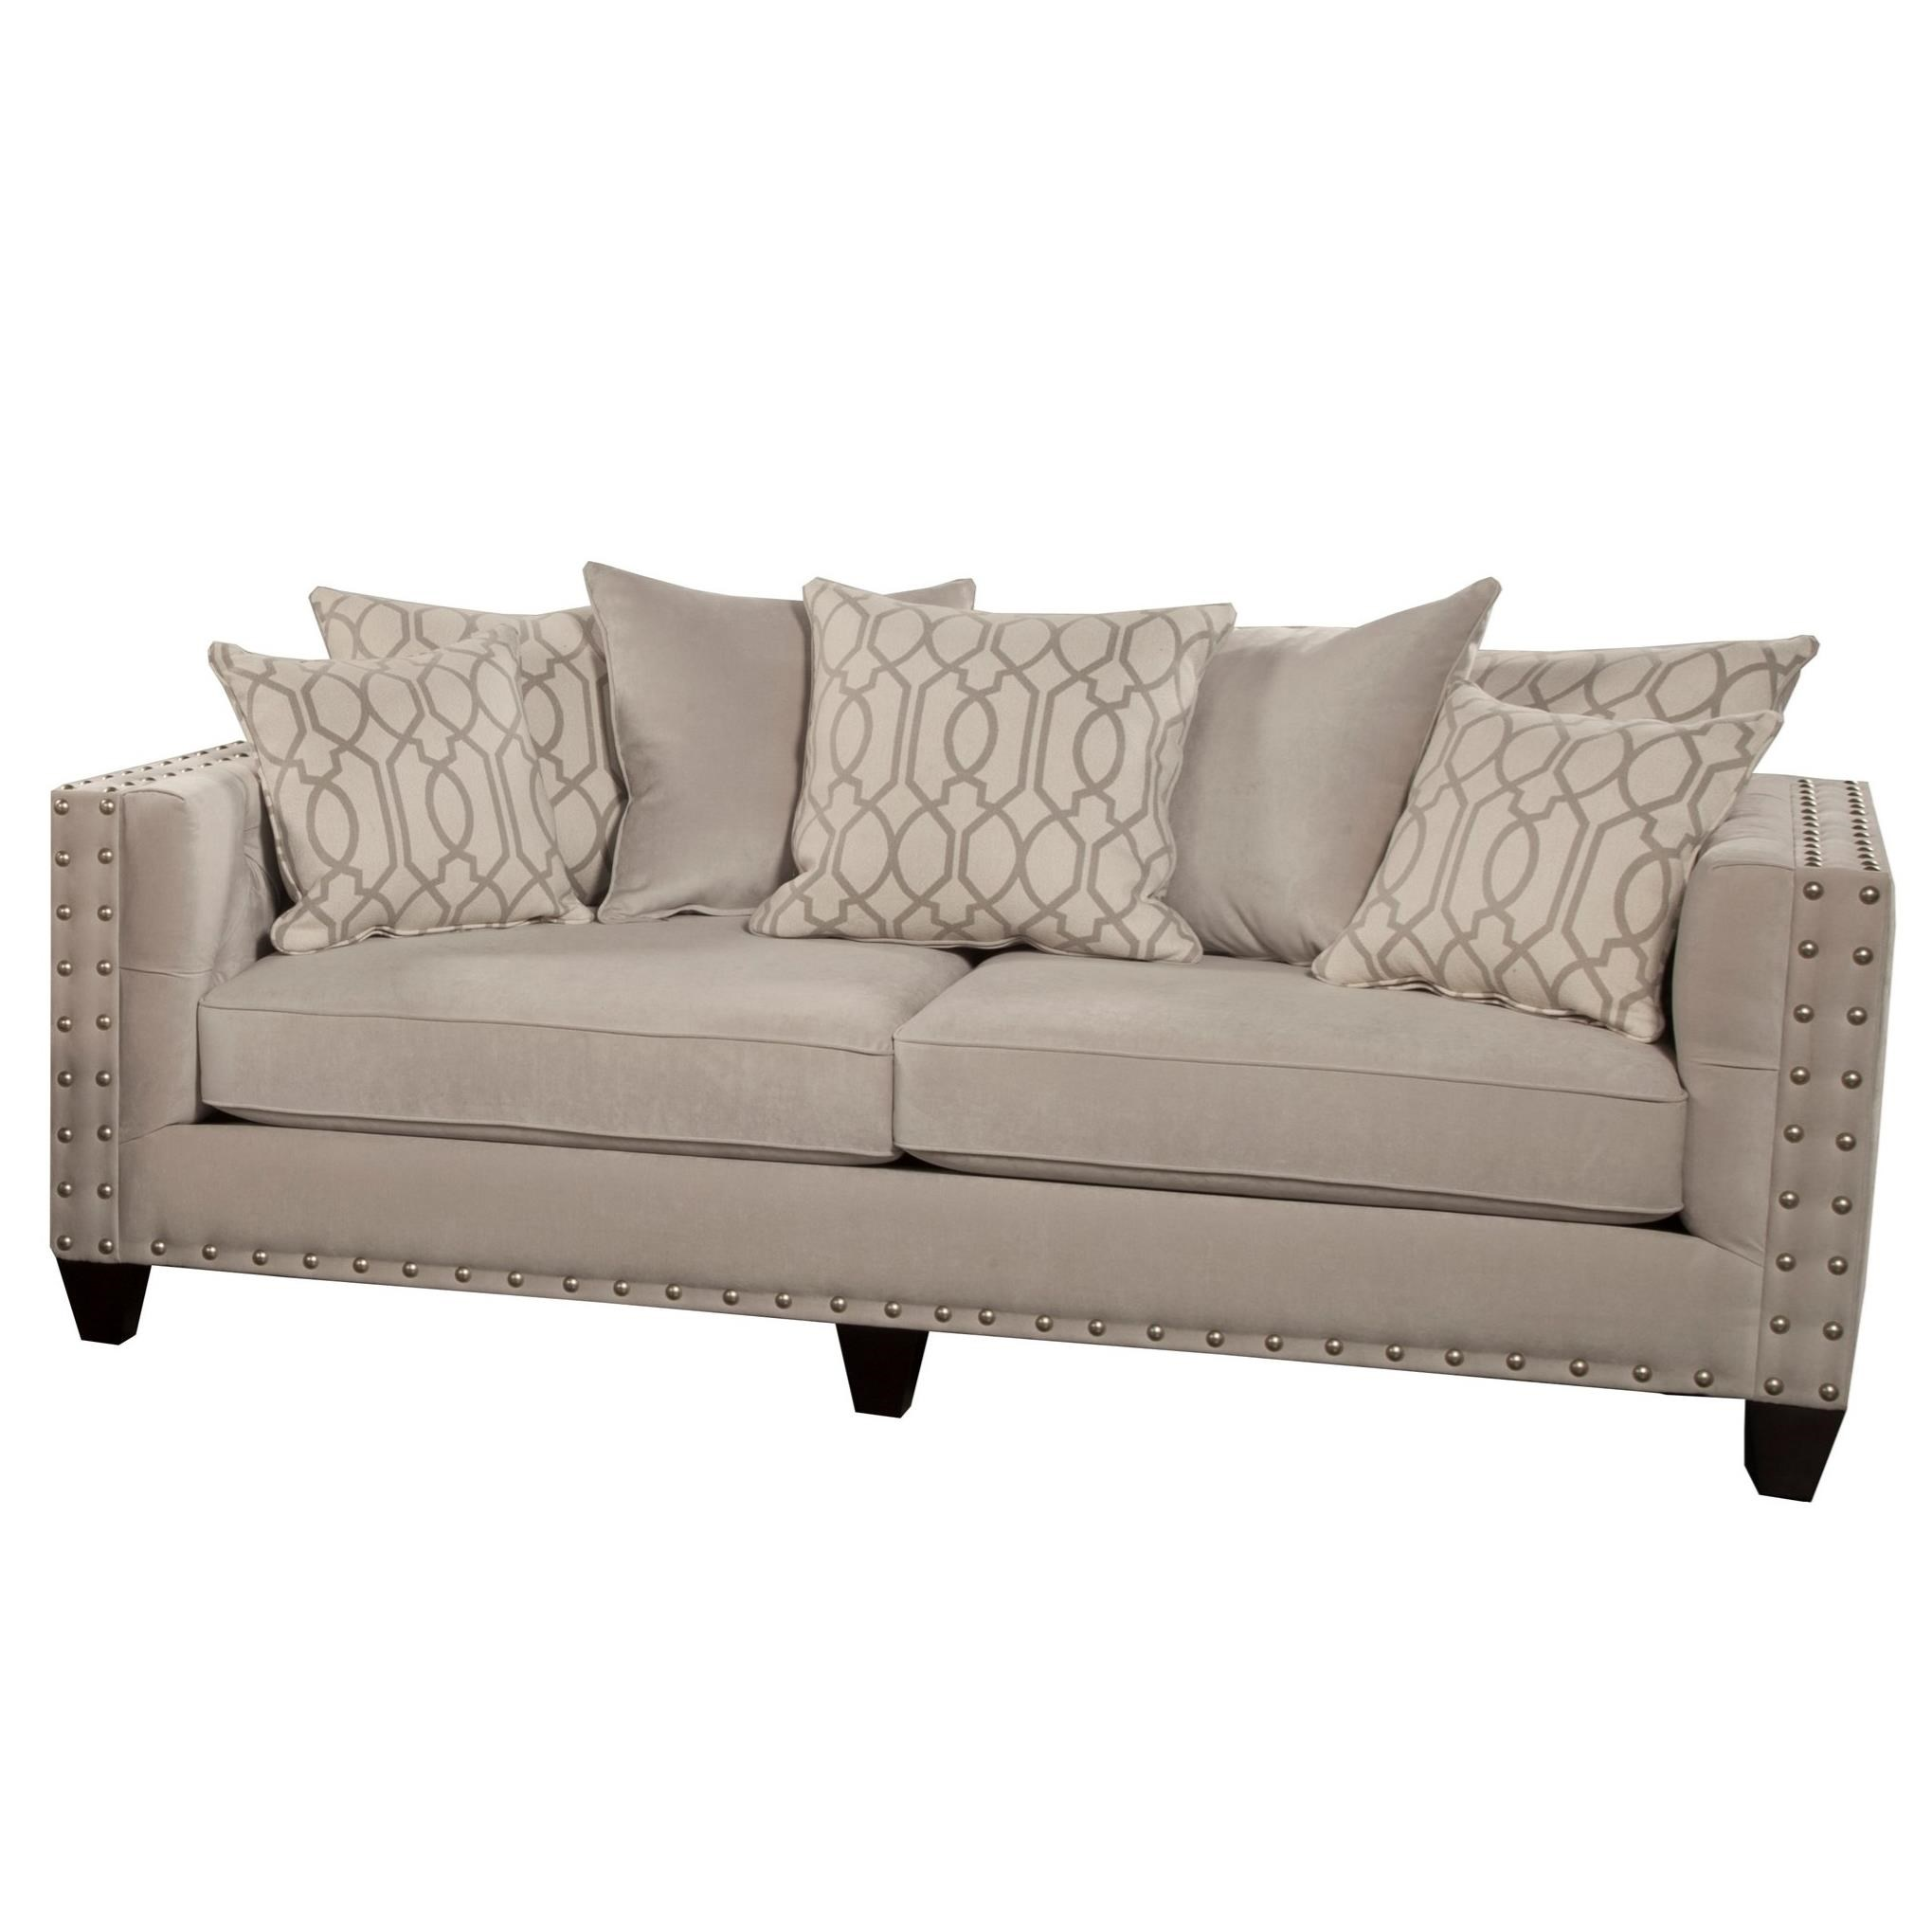 Del Sol Exclusive Roxanne by Robert Michael Upholstered Sofa - Item Number: ROX-SOFA-SMOKEOYSTER